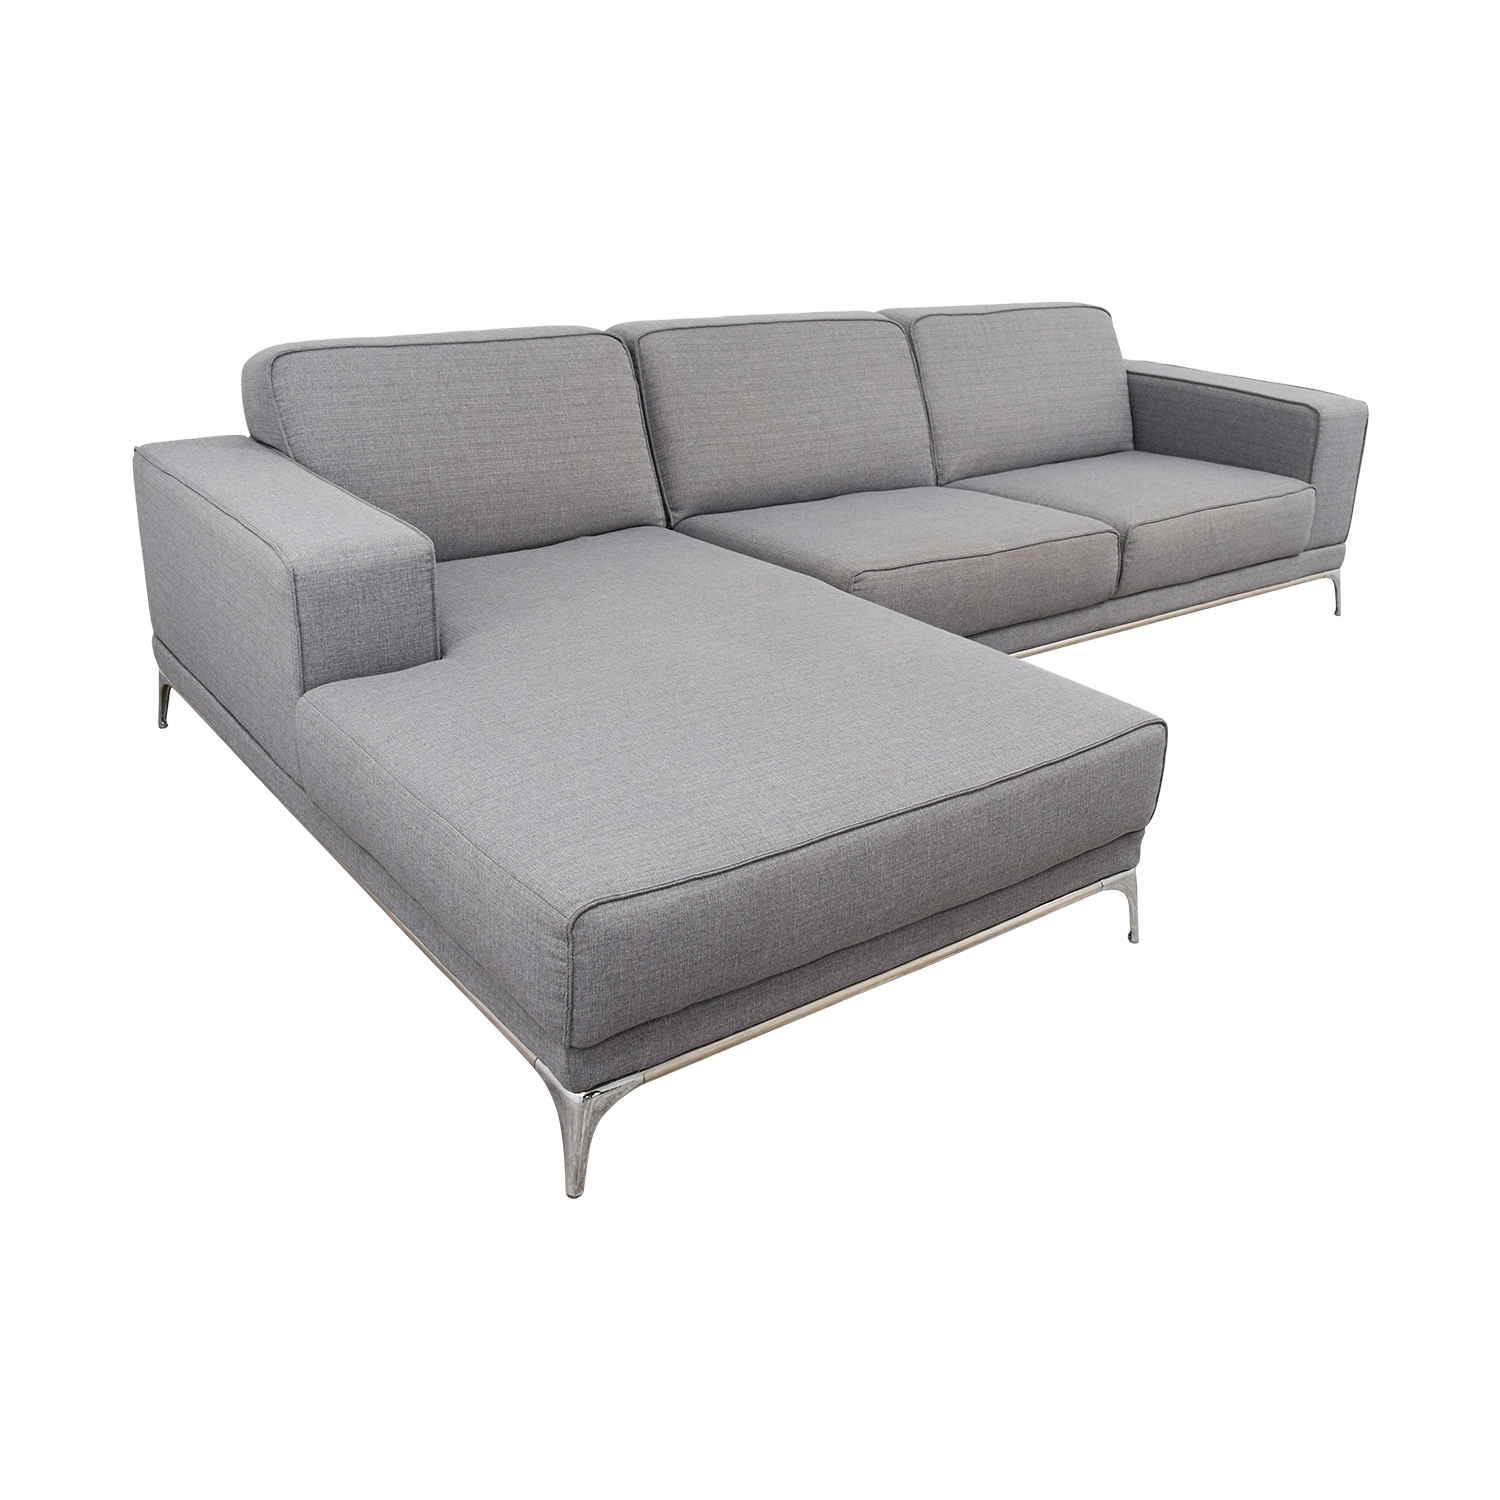 Agata Agata Light Grey Sectional grey